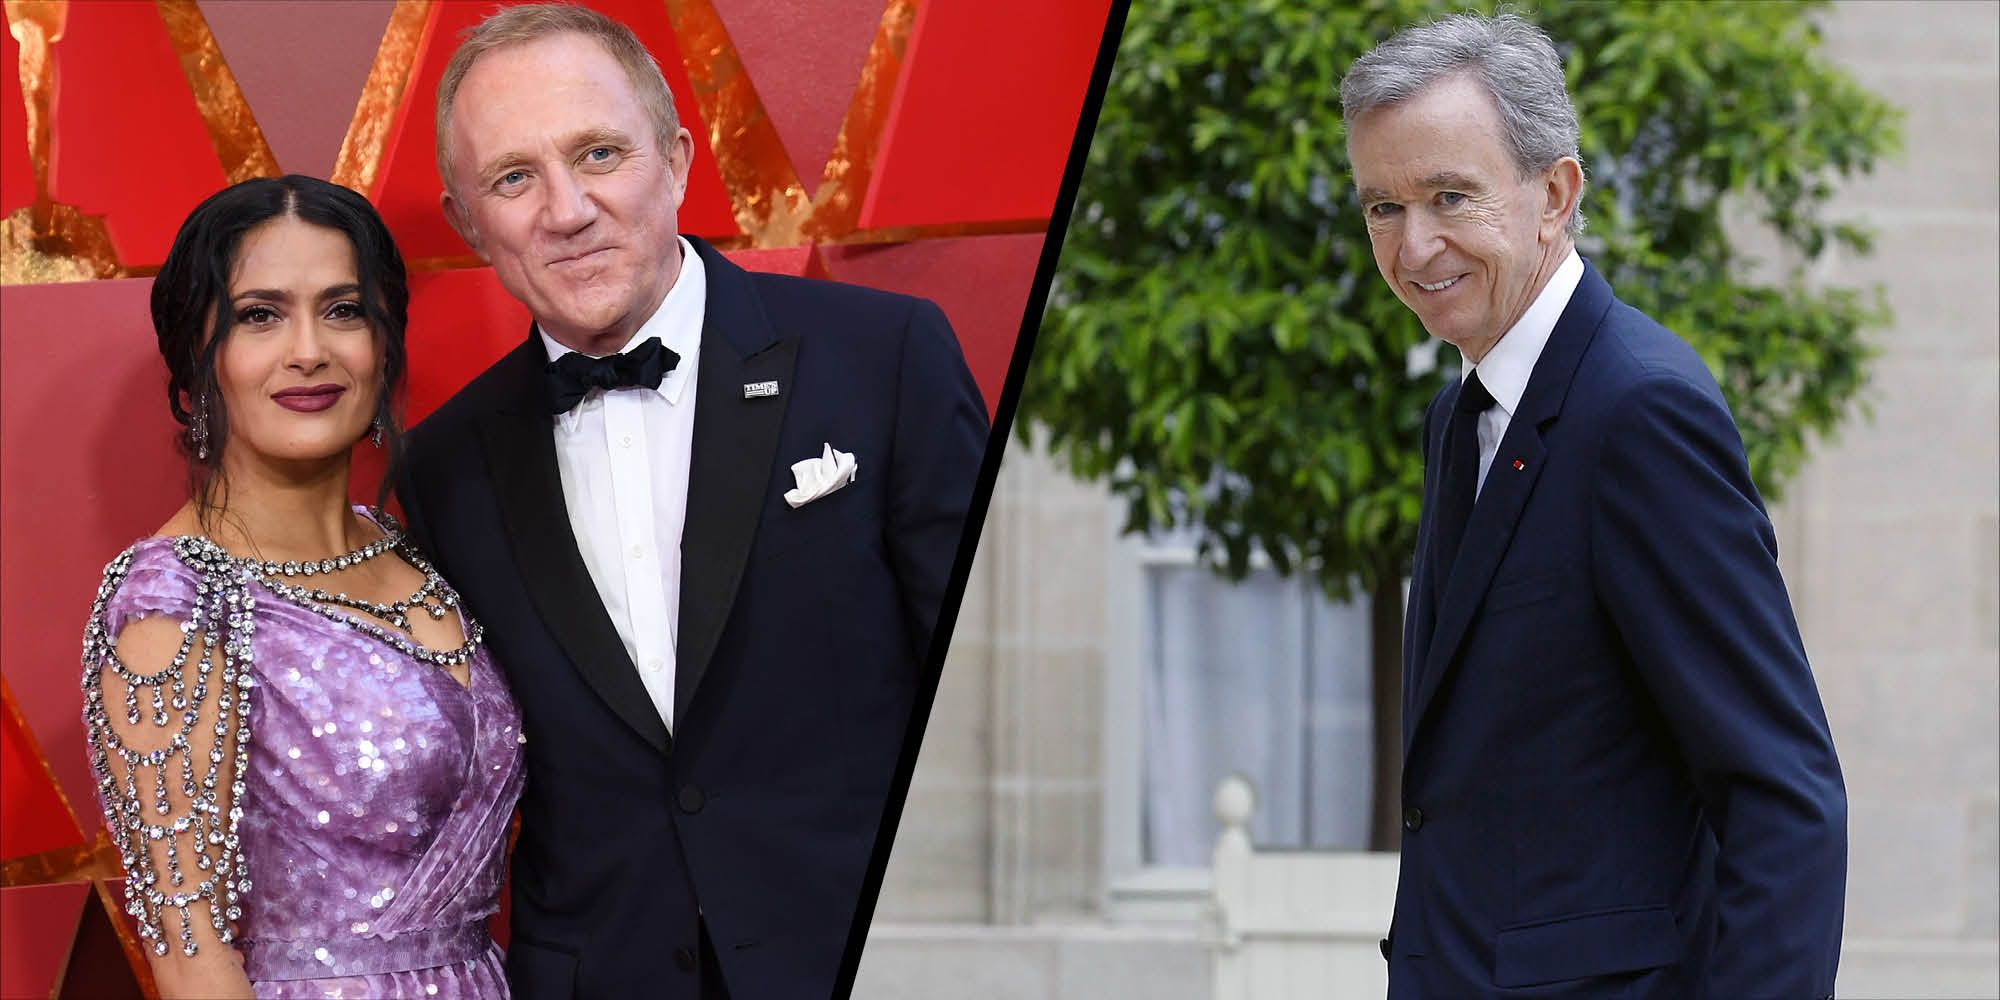 French fashion tycoons donate €300 million to the restoration of Notre Dame